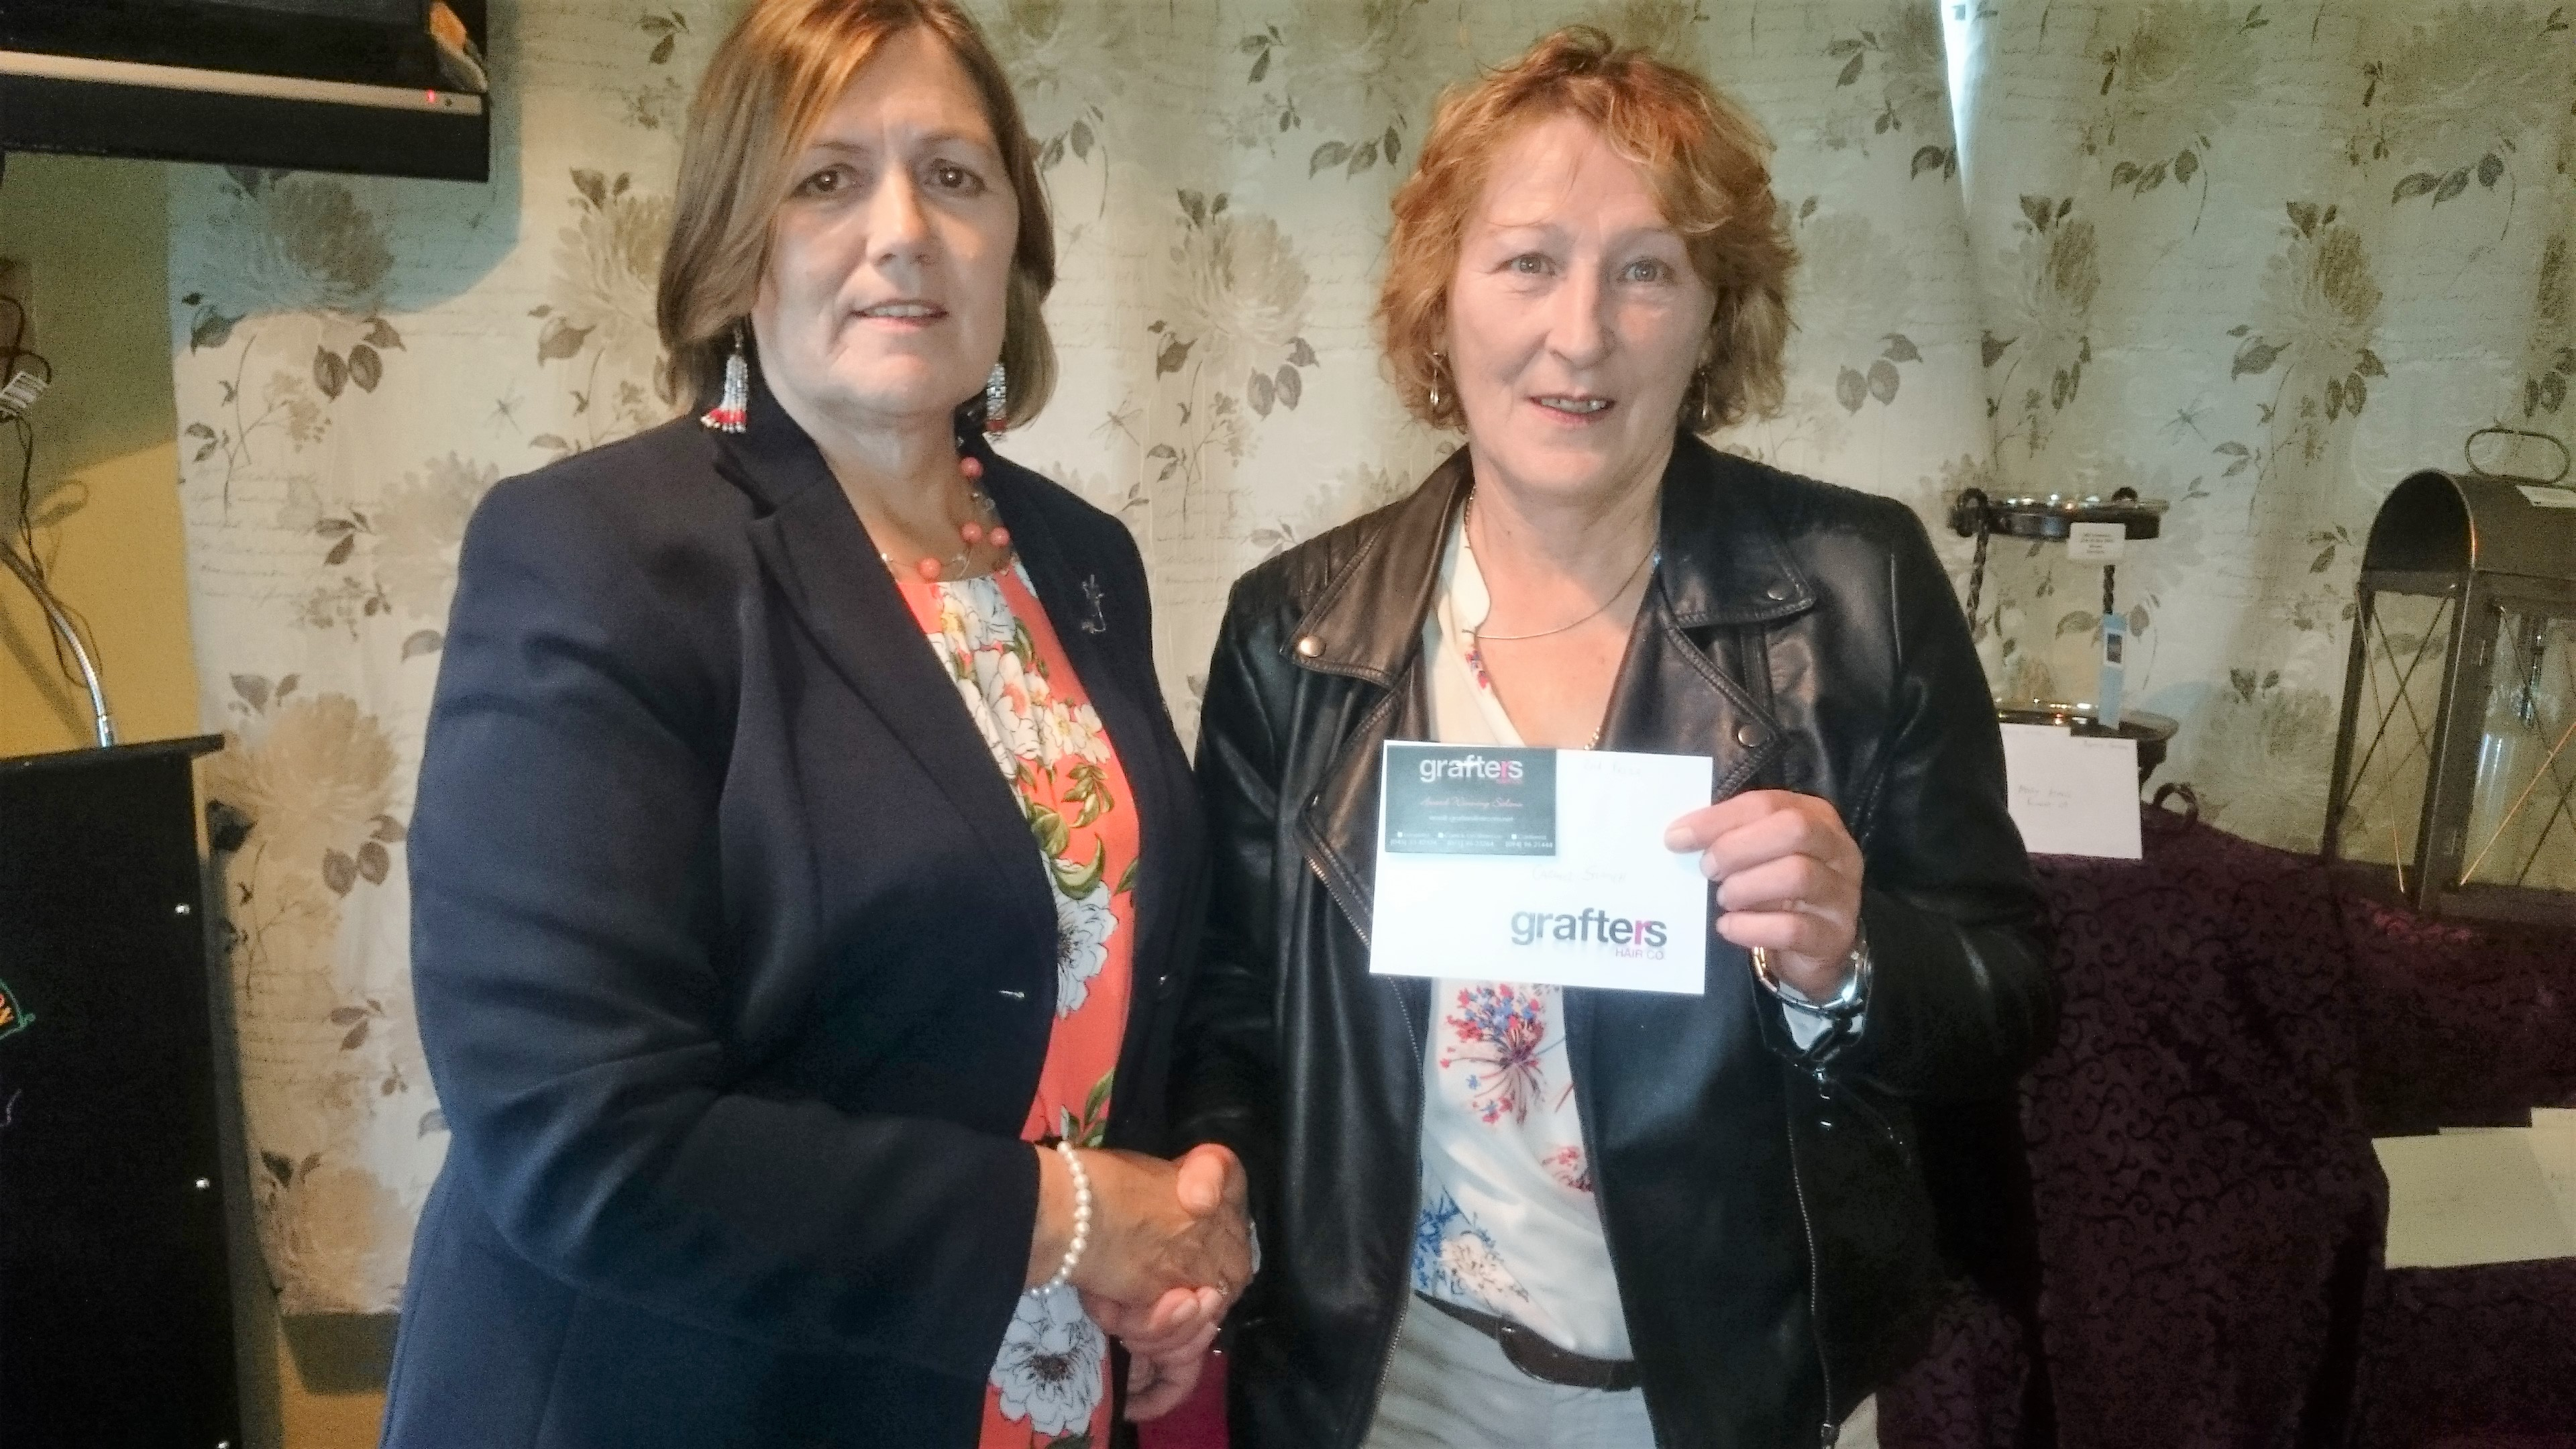 GRAFTERS STABLEFORD: Lady Captain Noeleen Moffatt, Carmel Stritch(WINNER)